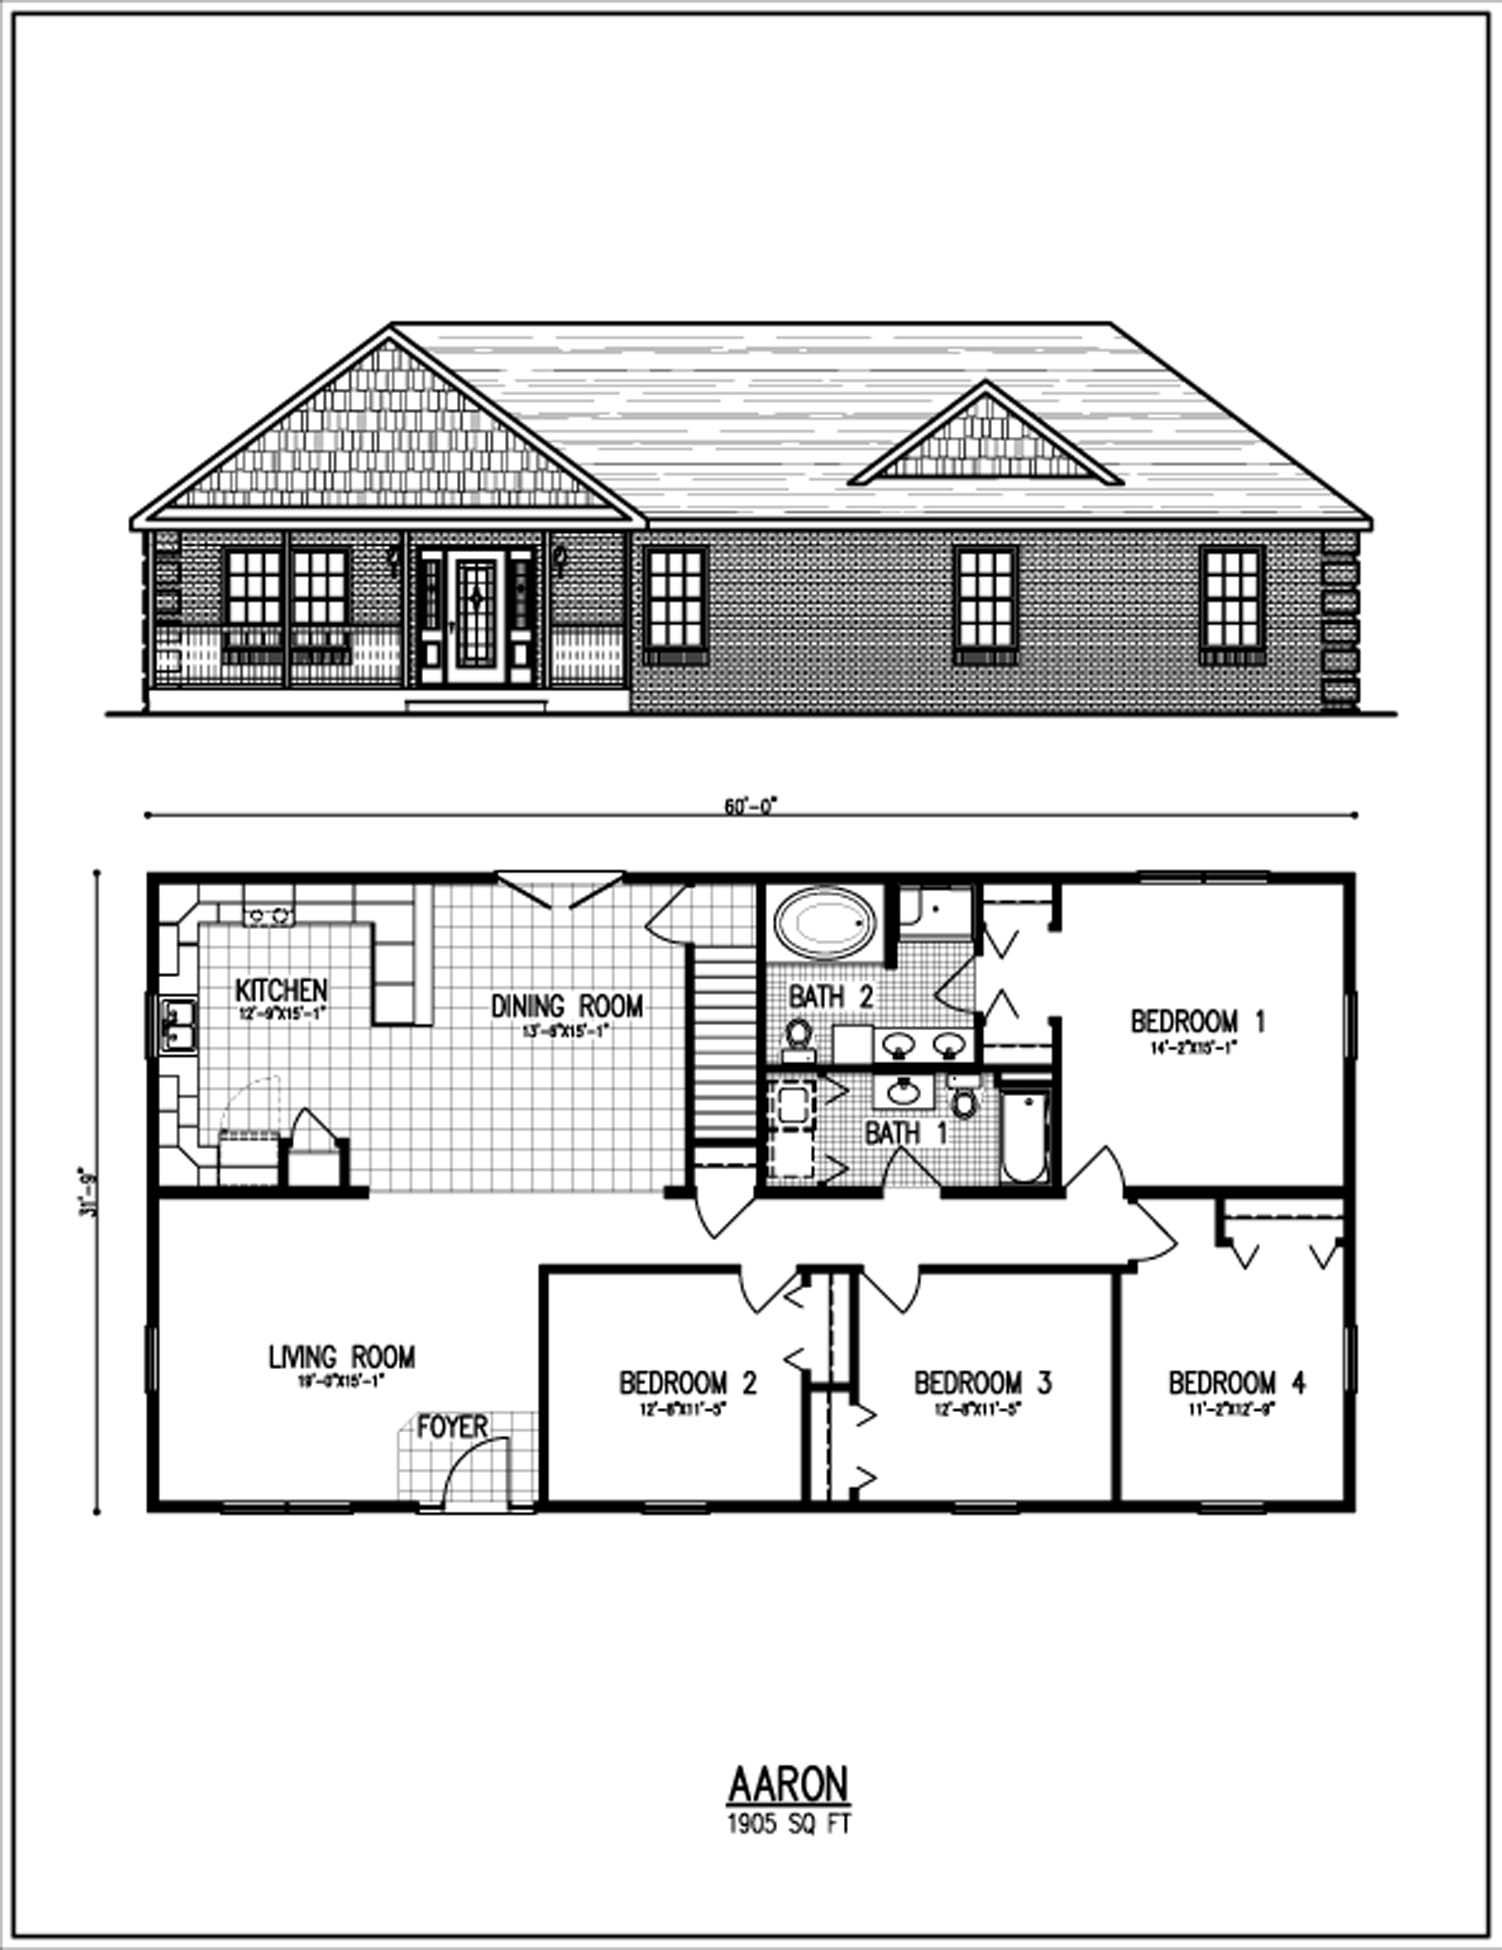 all american homes floorplan center staffordcape floor plans ranch style homes house of samples